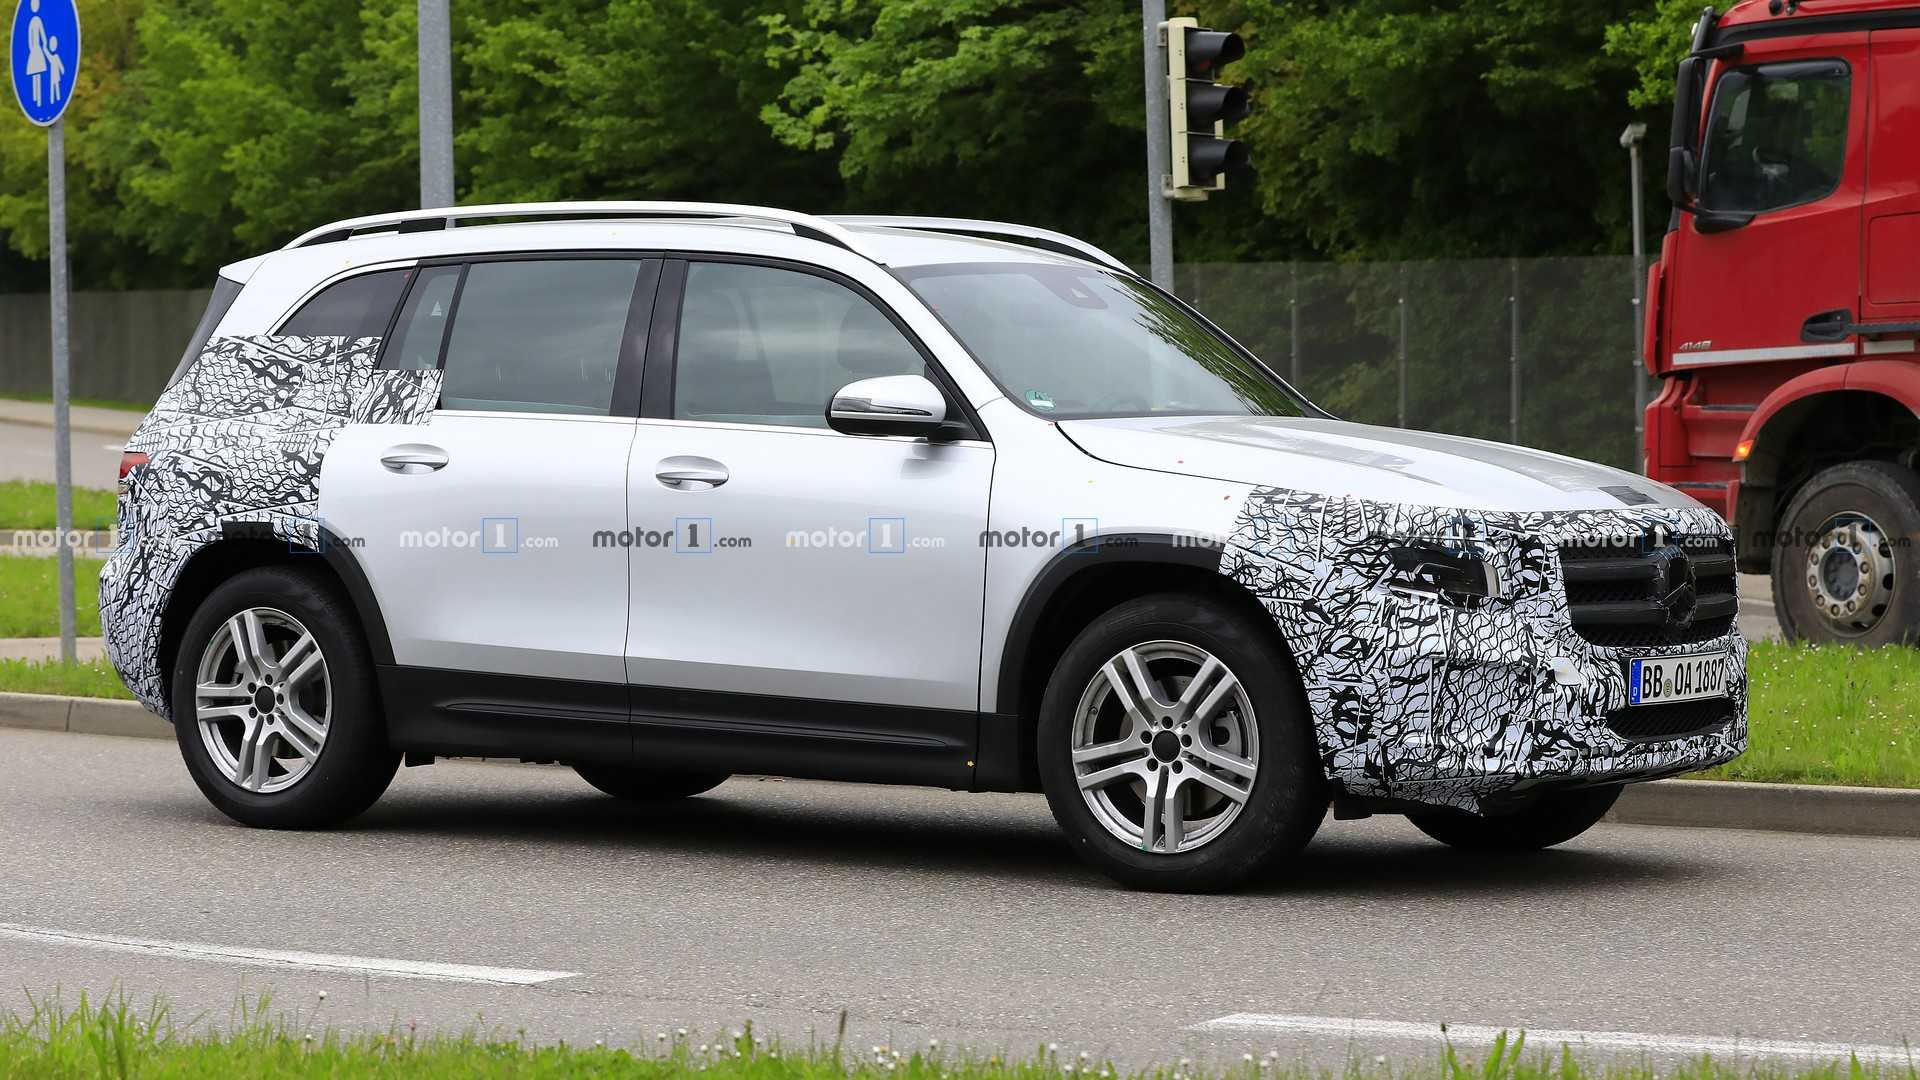 Best Minivan Tires 2020 2020 Mercedes GLB: Our Best Look Yet Thanks To New Spy Shots